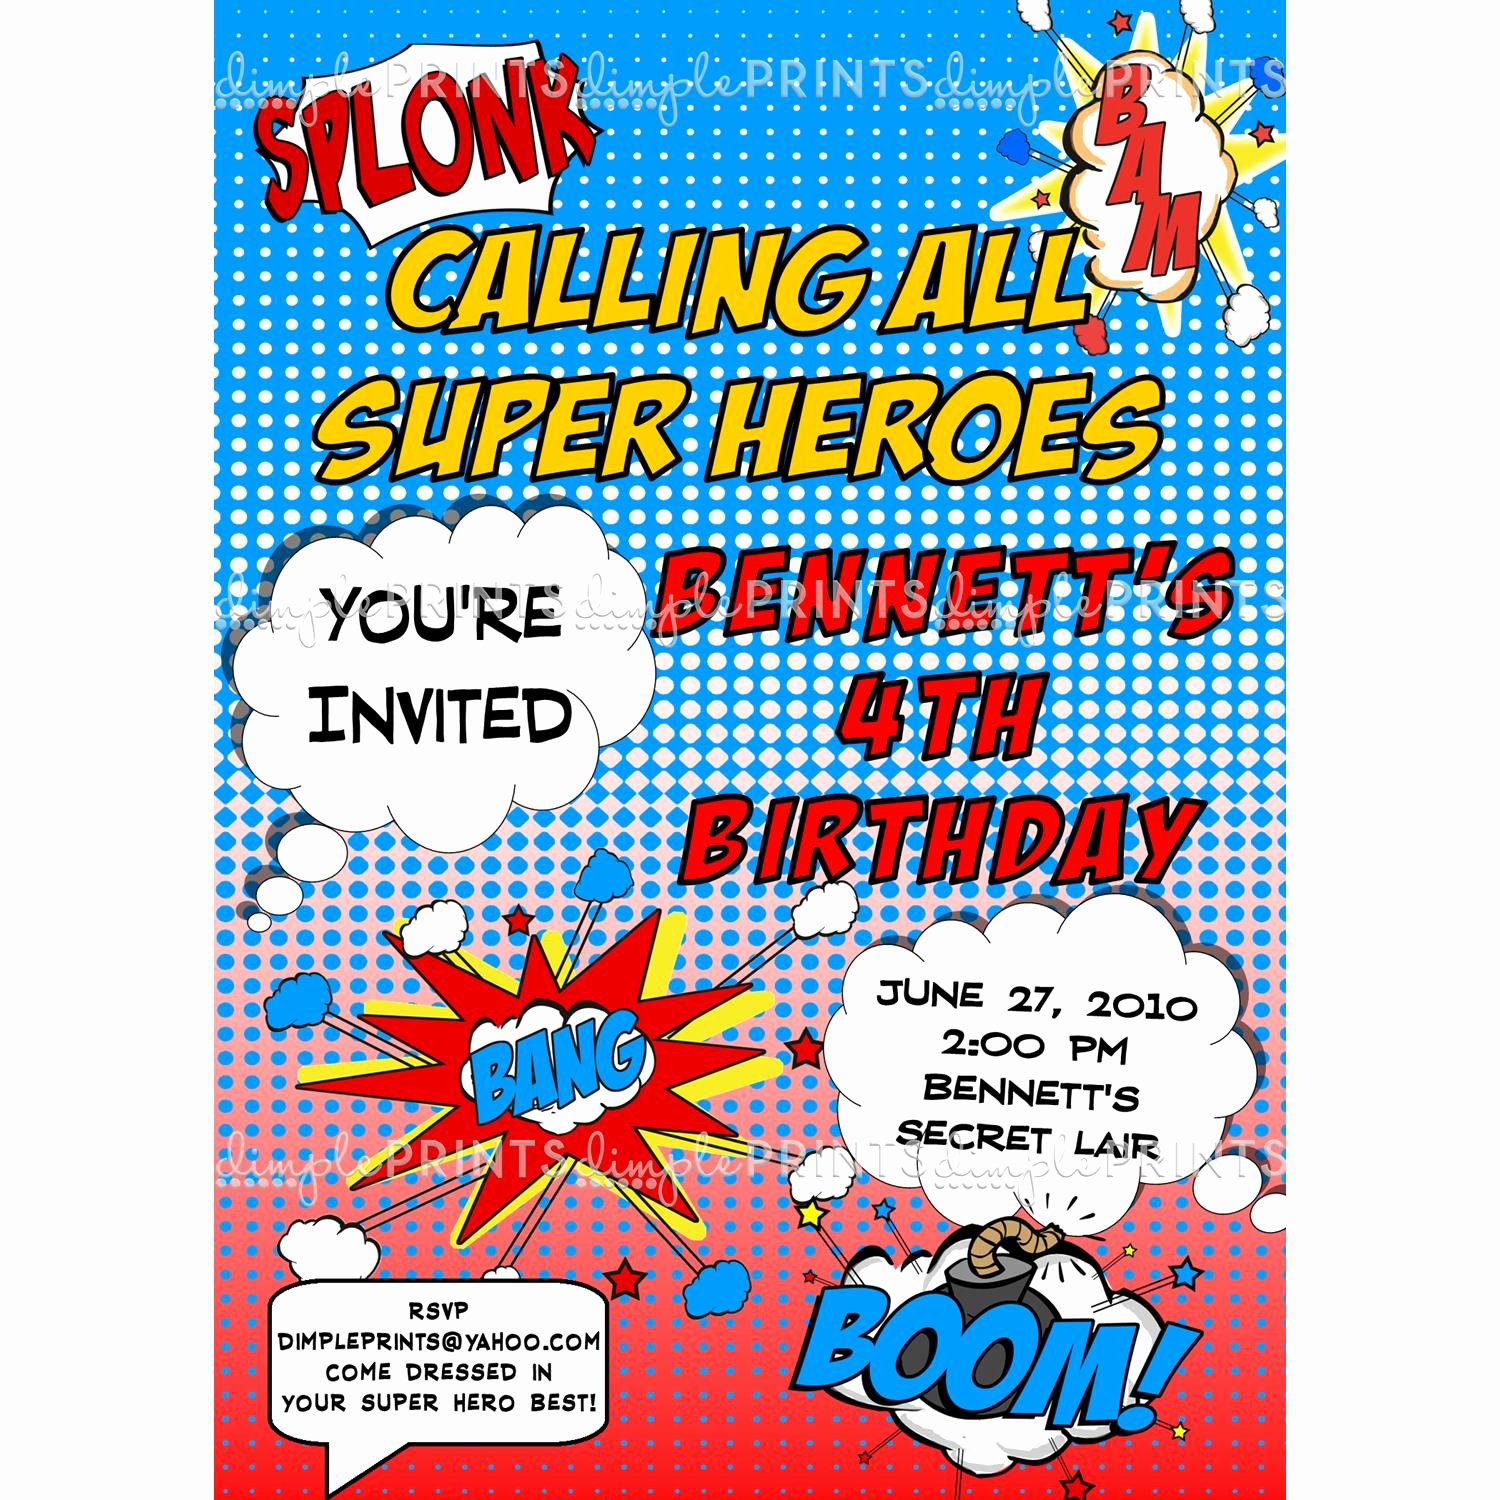 Superheroes Birthday Party Invitations Elegant Superhero Ic Printable Invitation Dimple Prints Shop